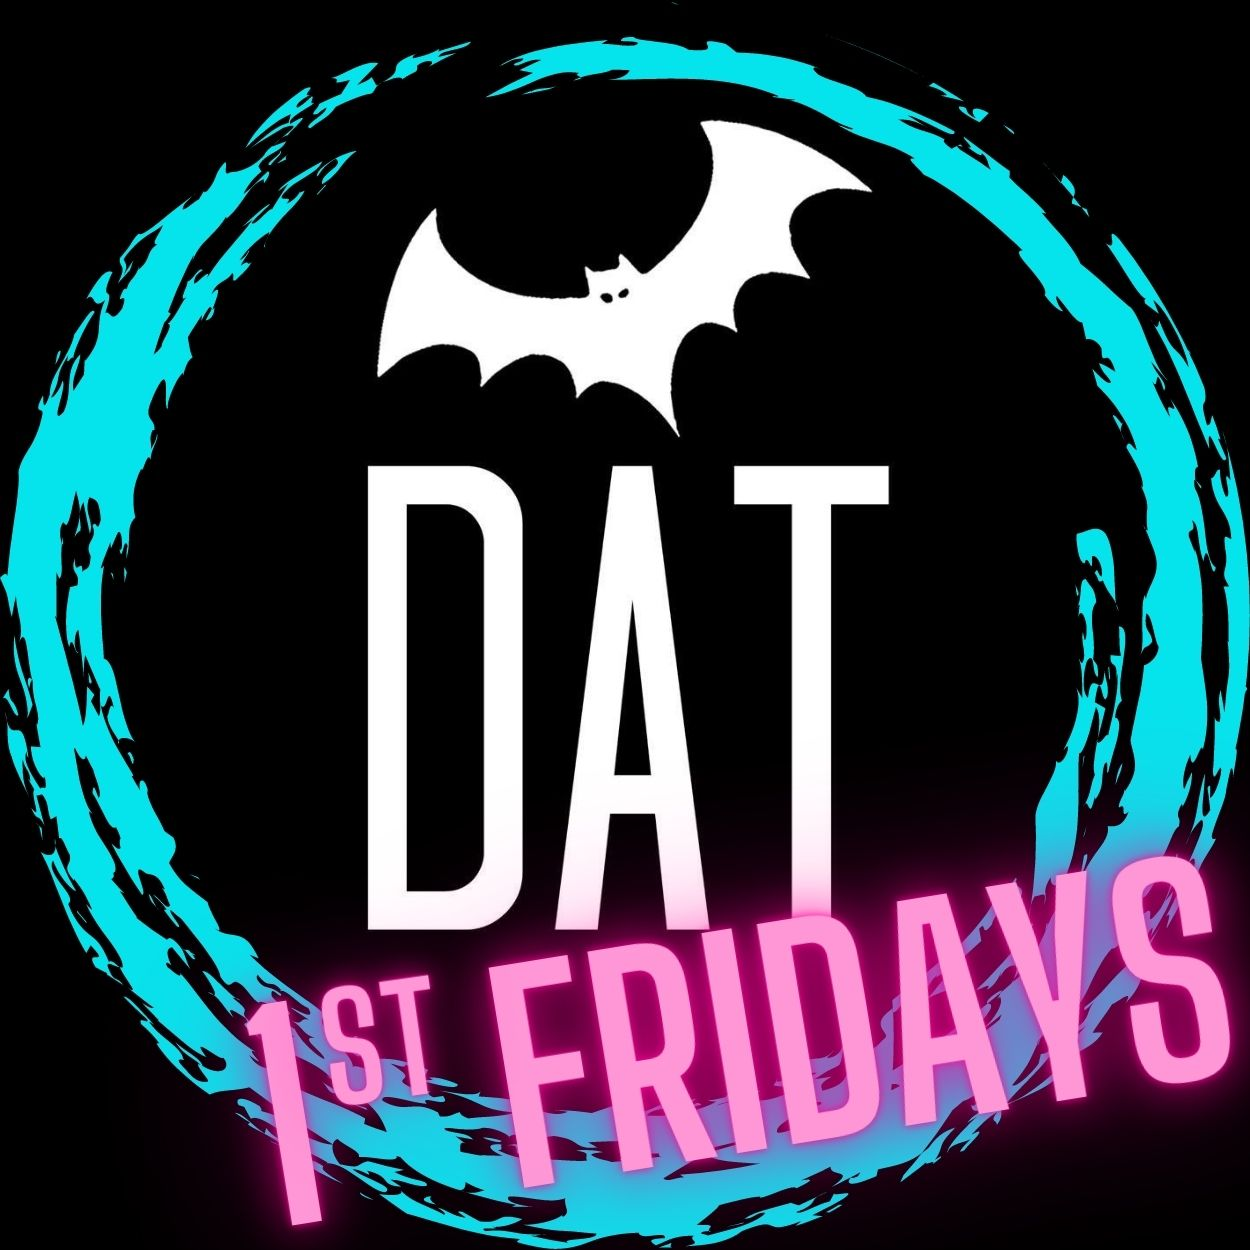 Background of various neon colors: Pink, purple, blue with yellow shapes all over. At the top is the DAT logo, a black square with a white frame. inside the frame is a white bat, DAT, Deaf Austin Theatre. Across the top, the text reads Deaf Austin Theatre presents. In the middle, large print DAT FIRST FRIDAYS. Under that it says, every month, a different theme. Join us for monthly virtual entertainment by Deaf Artists from all over! 1st Friday every month 7pm-8:30pm CST. Tickets $20. Across the bottom is a black outline of Downtown Austin with bats flying out.